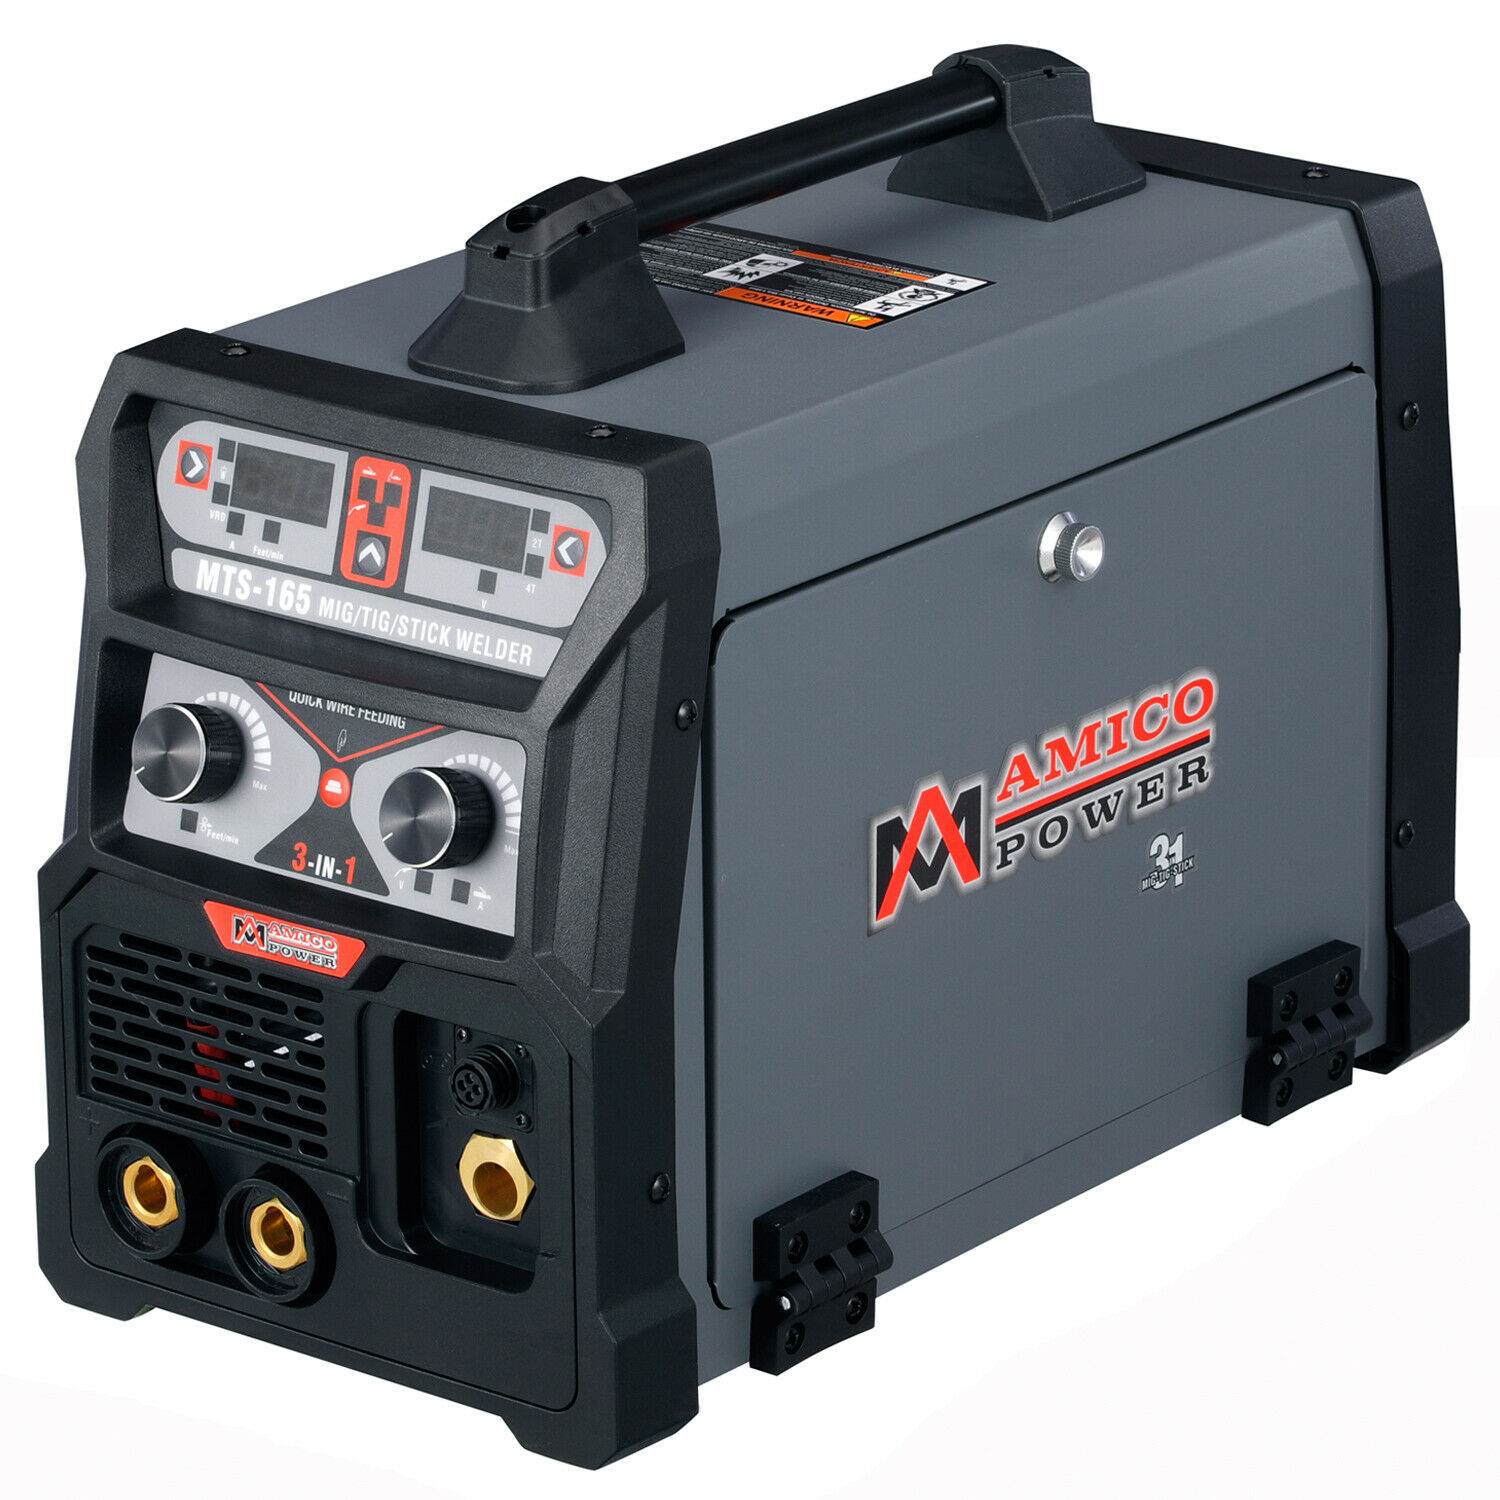 AMICO MTS-165, 165 Amp MIG Wire/Flux Cored, TIG Stick Arc DC Welder Welding. Buy it now for 397.00